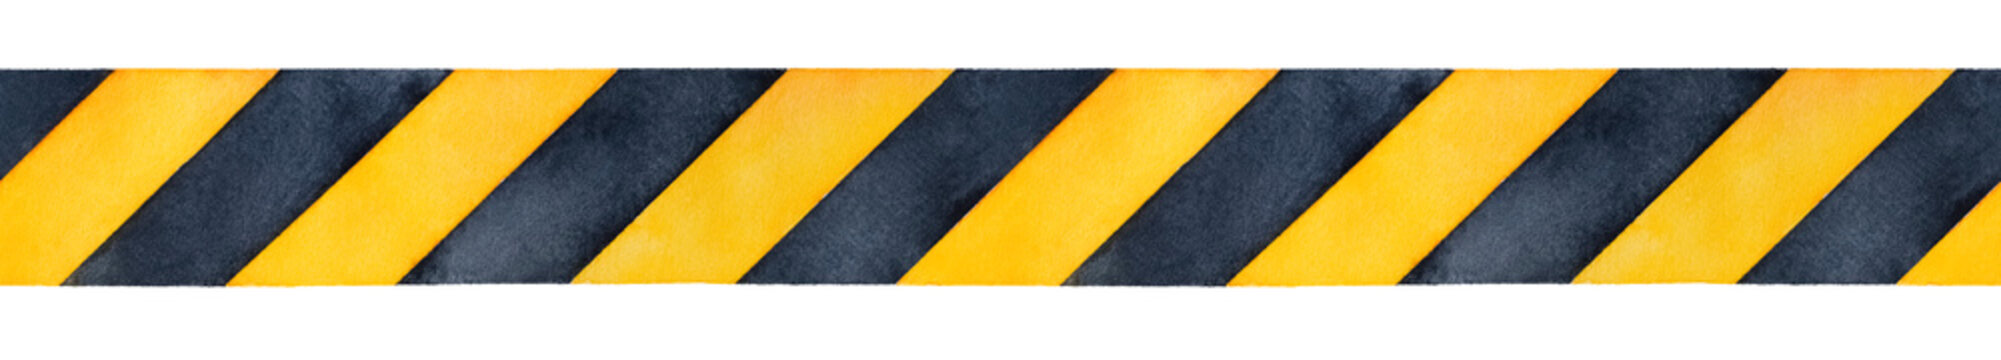 Black and yellow watercolor stripes tape. Bright contrast colours to warn or catch attention. Handdrawn watercolour sketchy gradient drawing on white, isolated clip art element for design decoration.